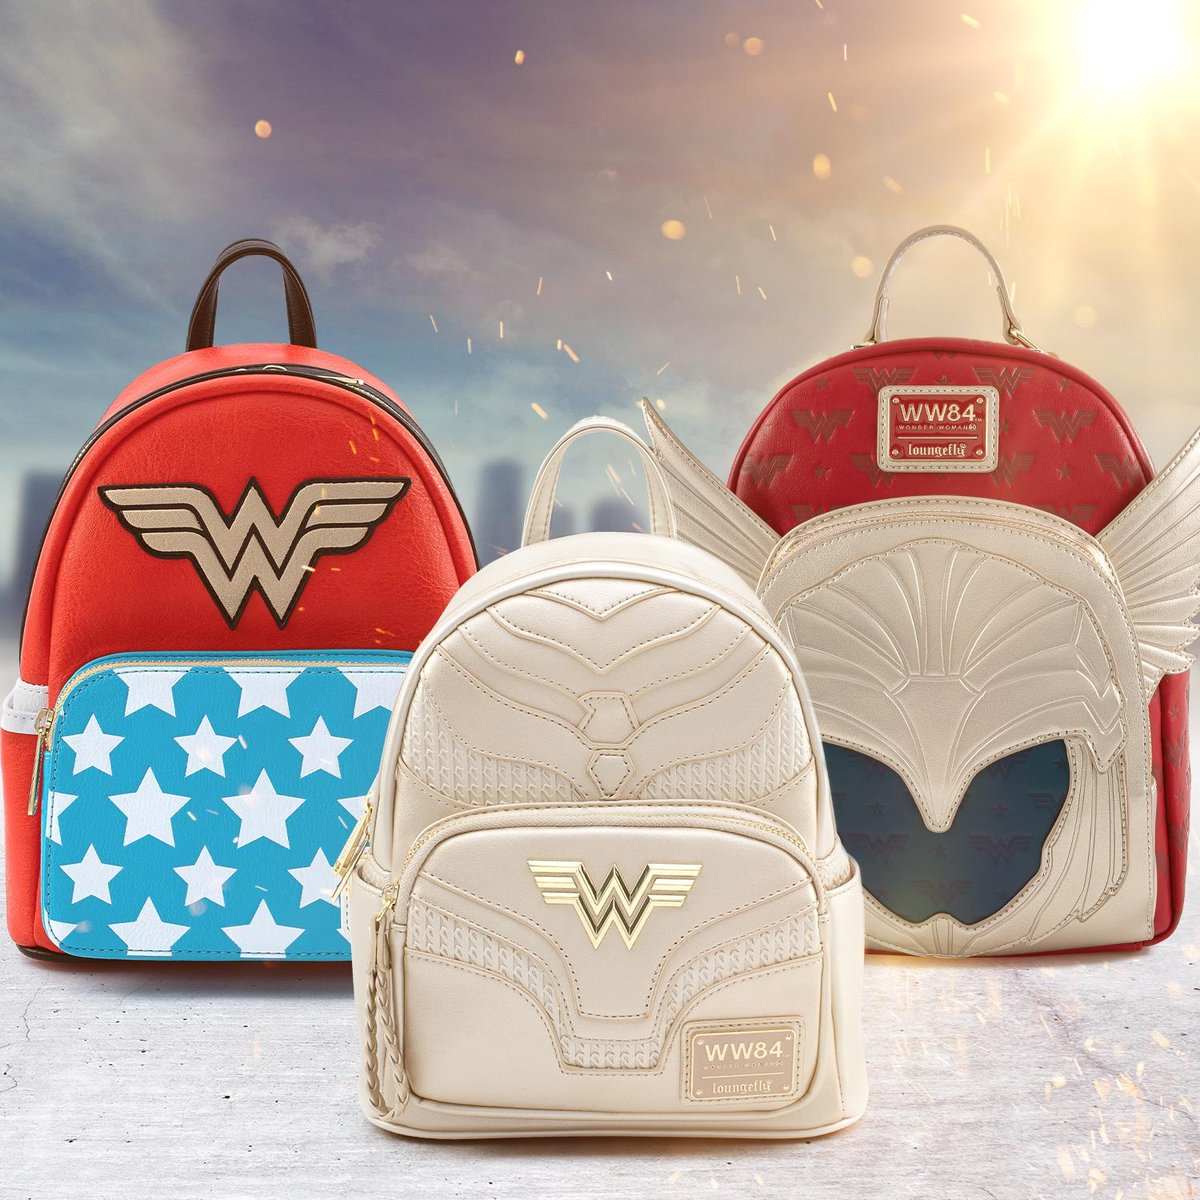 💙🌟❤️ Hey everyone! Today is Wonder Woman Day! Gear up and embrace your inner warrior with our powerful Wonder Woman selection on bit.ly/2TivpzC!!! 💙🌟❤️ #WonderWomanDay